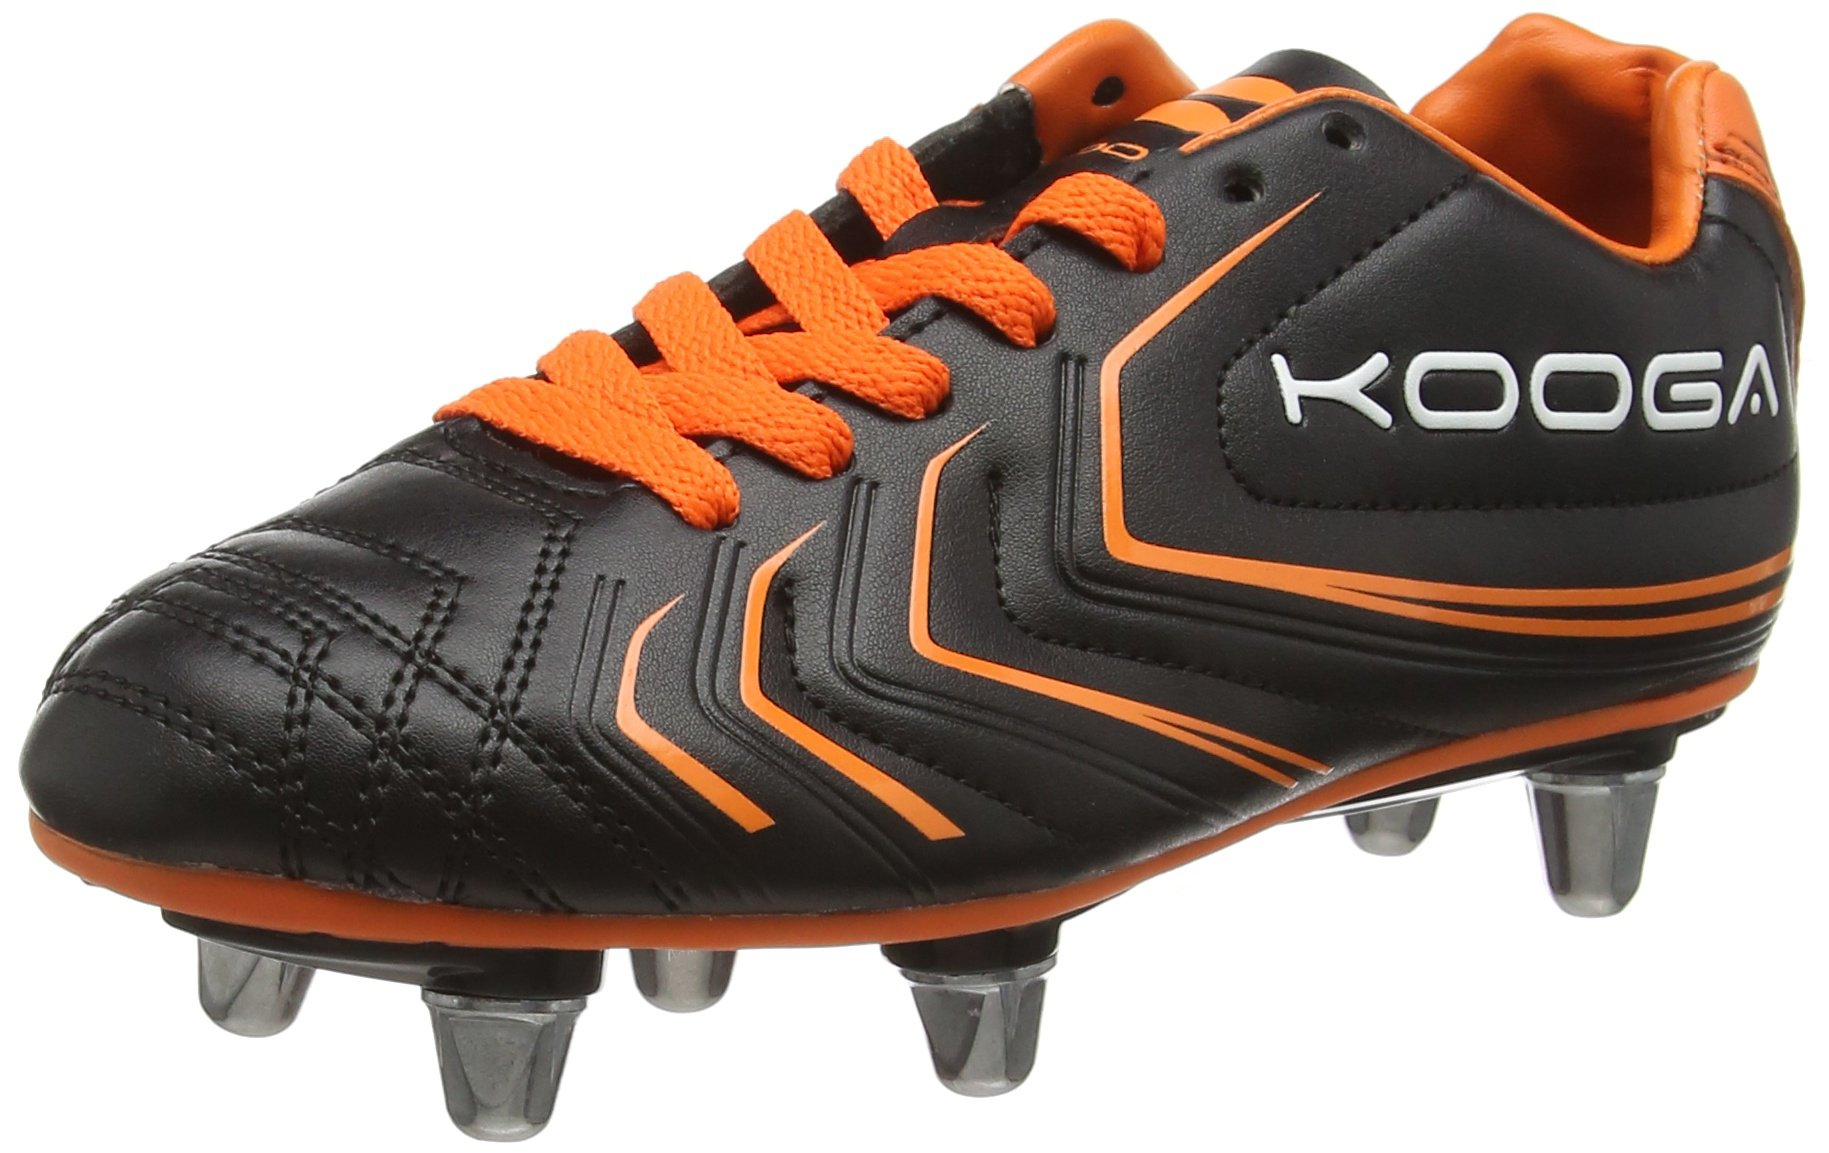 Kooga Warrior 2 Junior Sg Boots